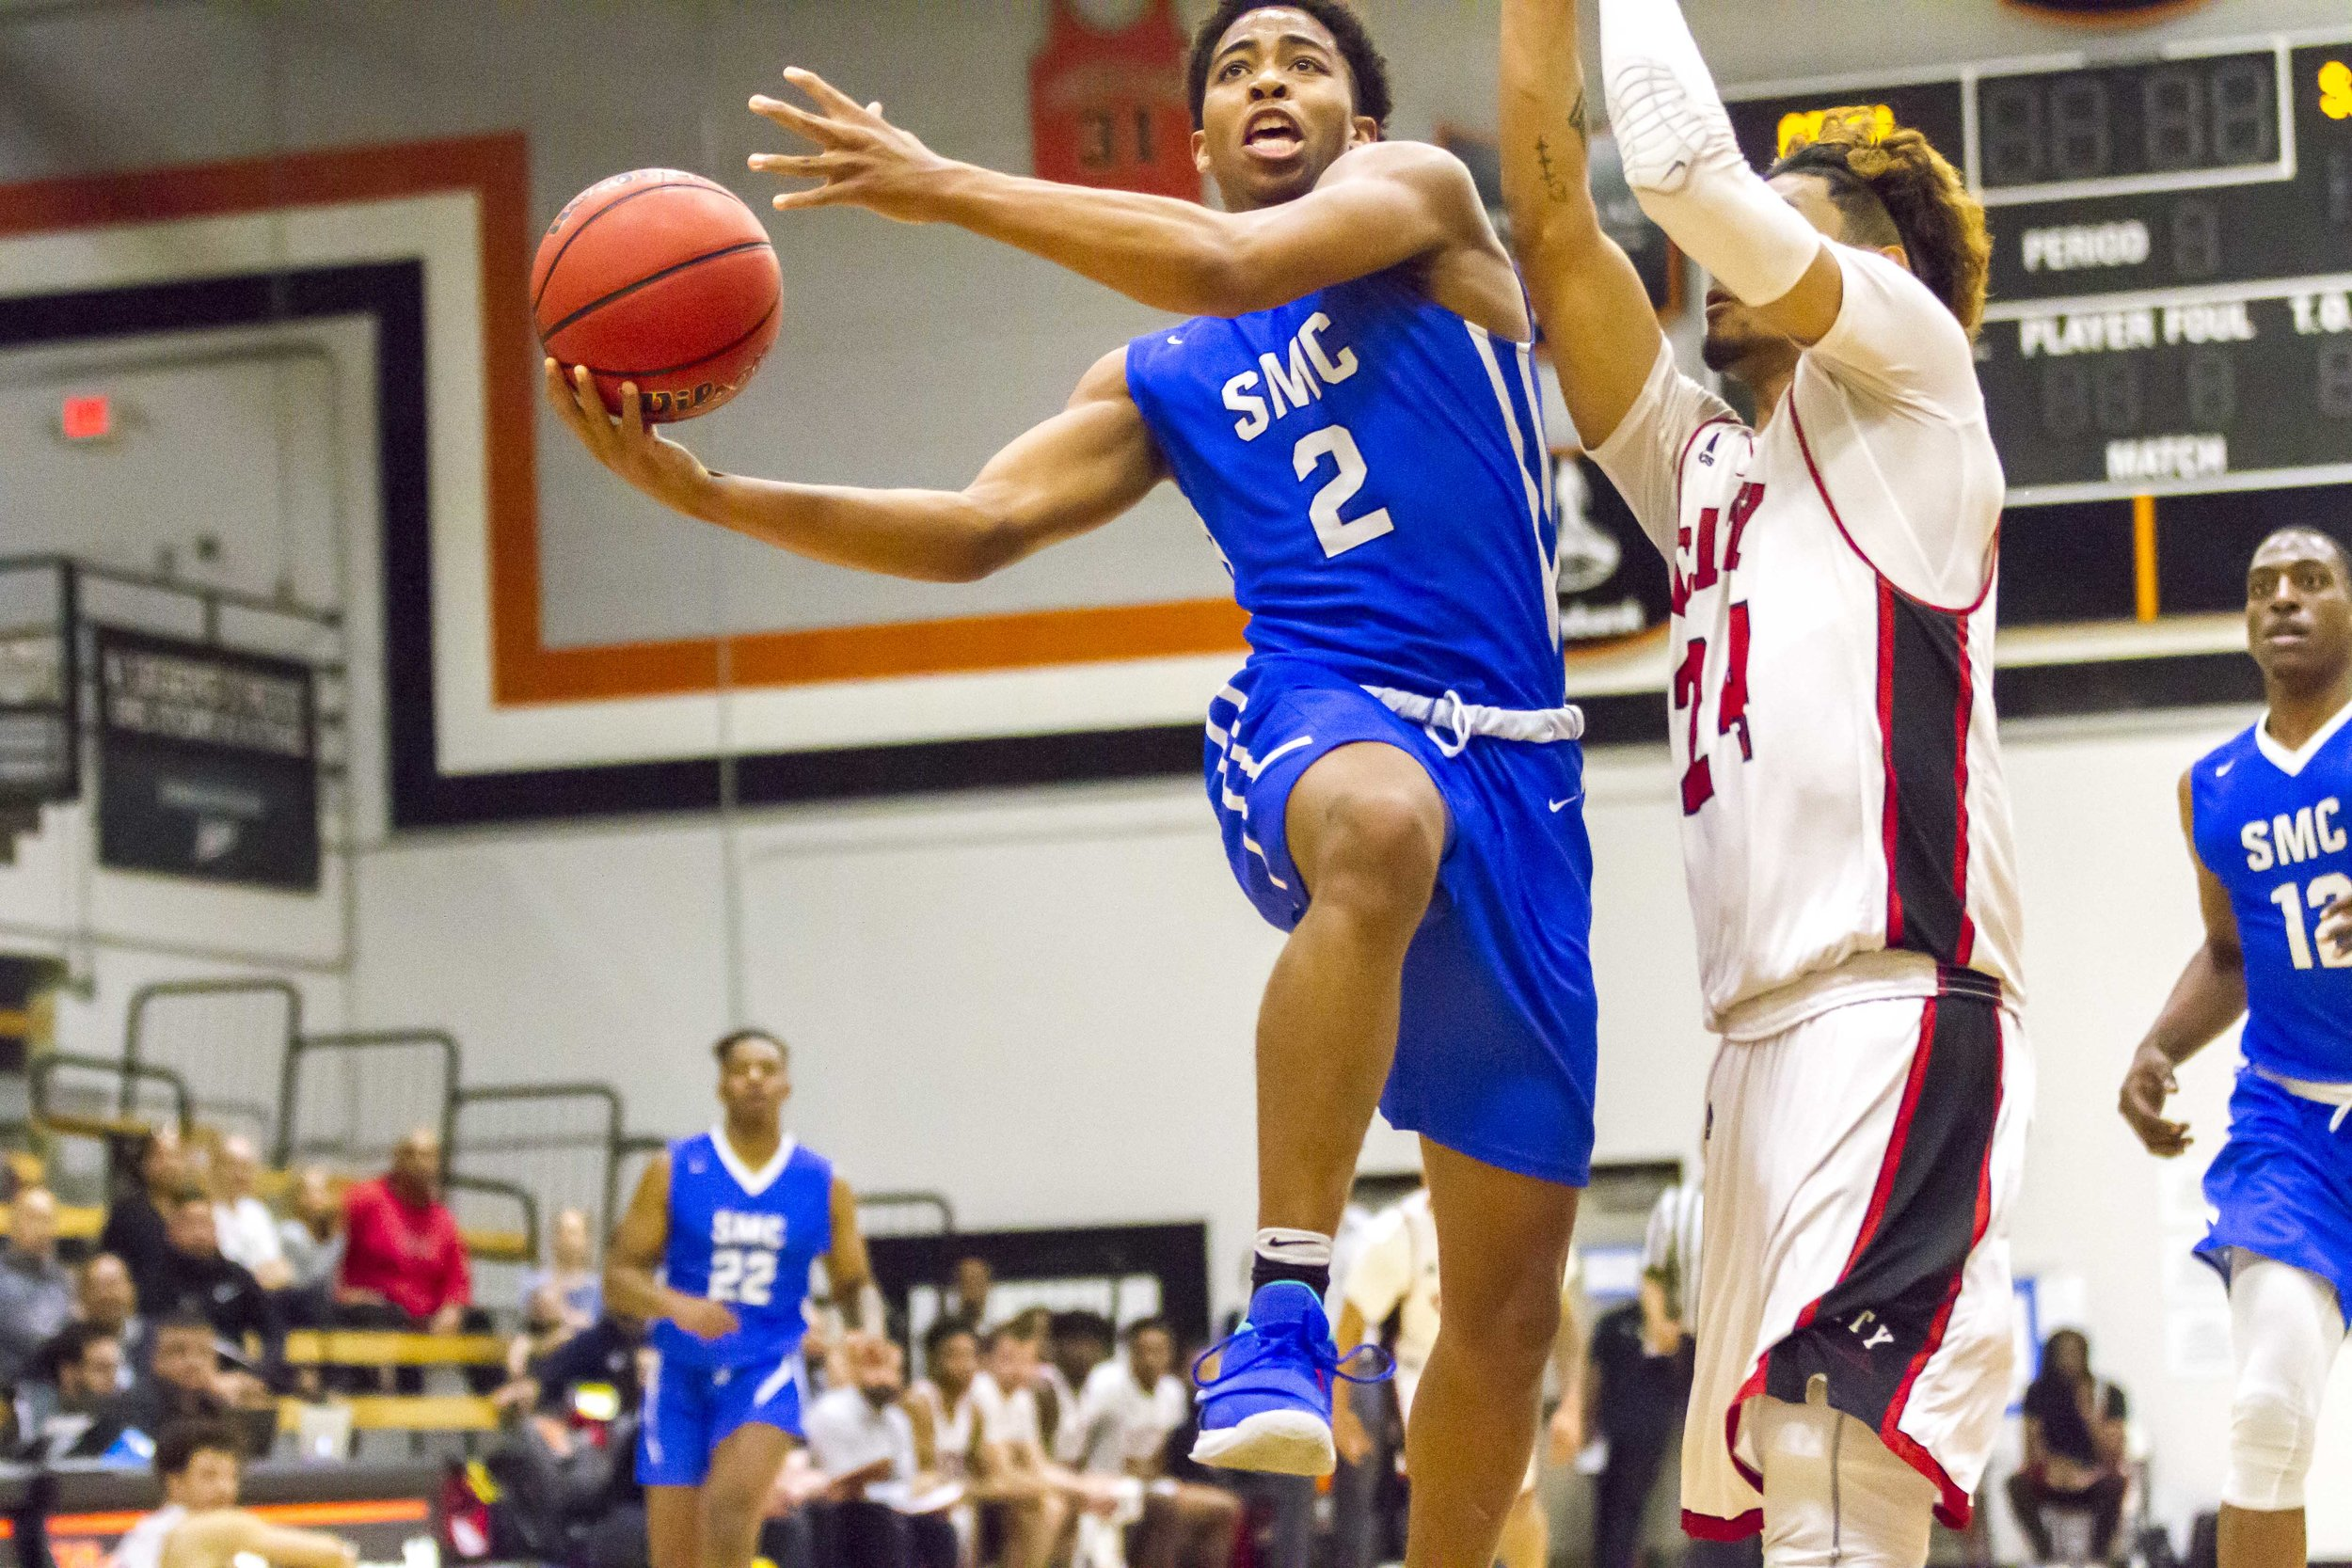 Mekhi Kimble (#2) from the Santa Monica College Corsairs and Walter Urbina(#24) from the defending CCCAA Champions of the City College of San Francisco at the CCCAA Men's Basketball Championship Turnament at Ventura College on Thursday March 14, 2019. Final Score 67-63. Photo by Tanya Barcessat